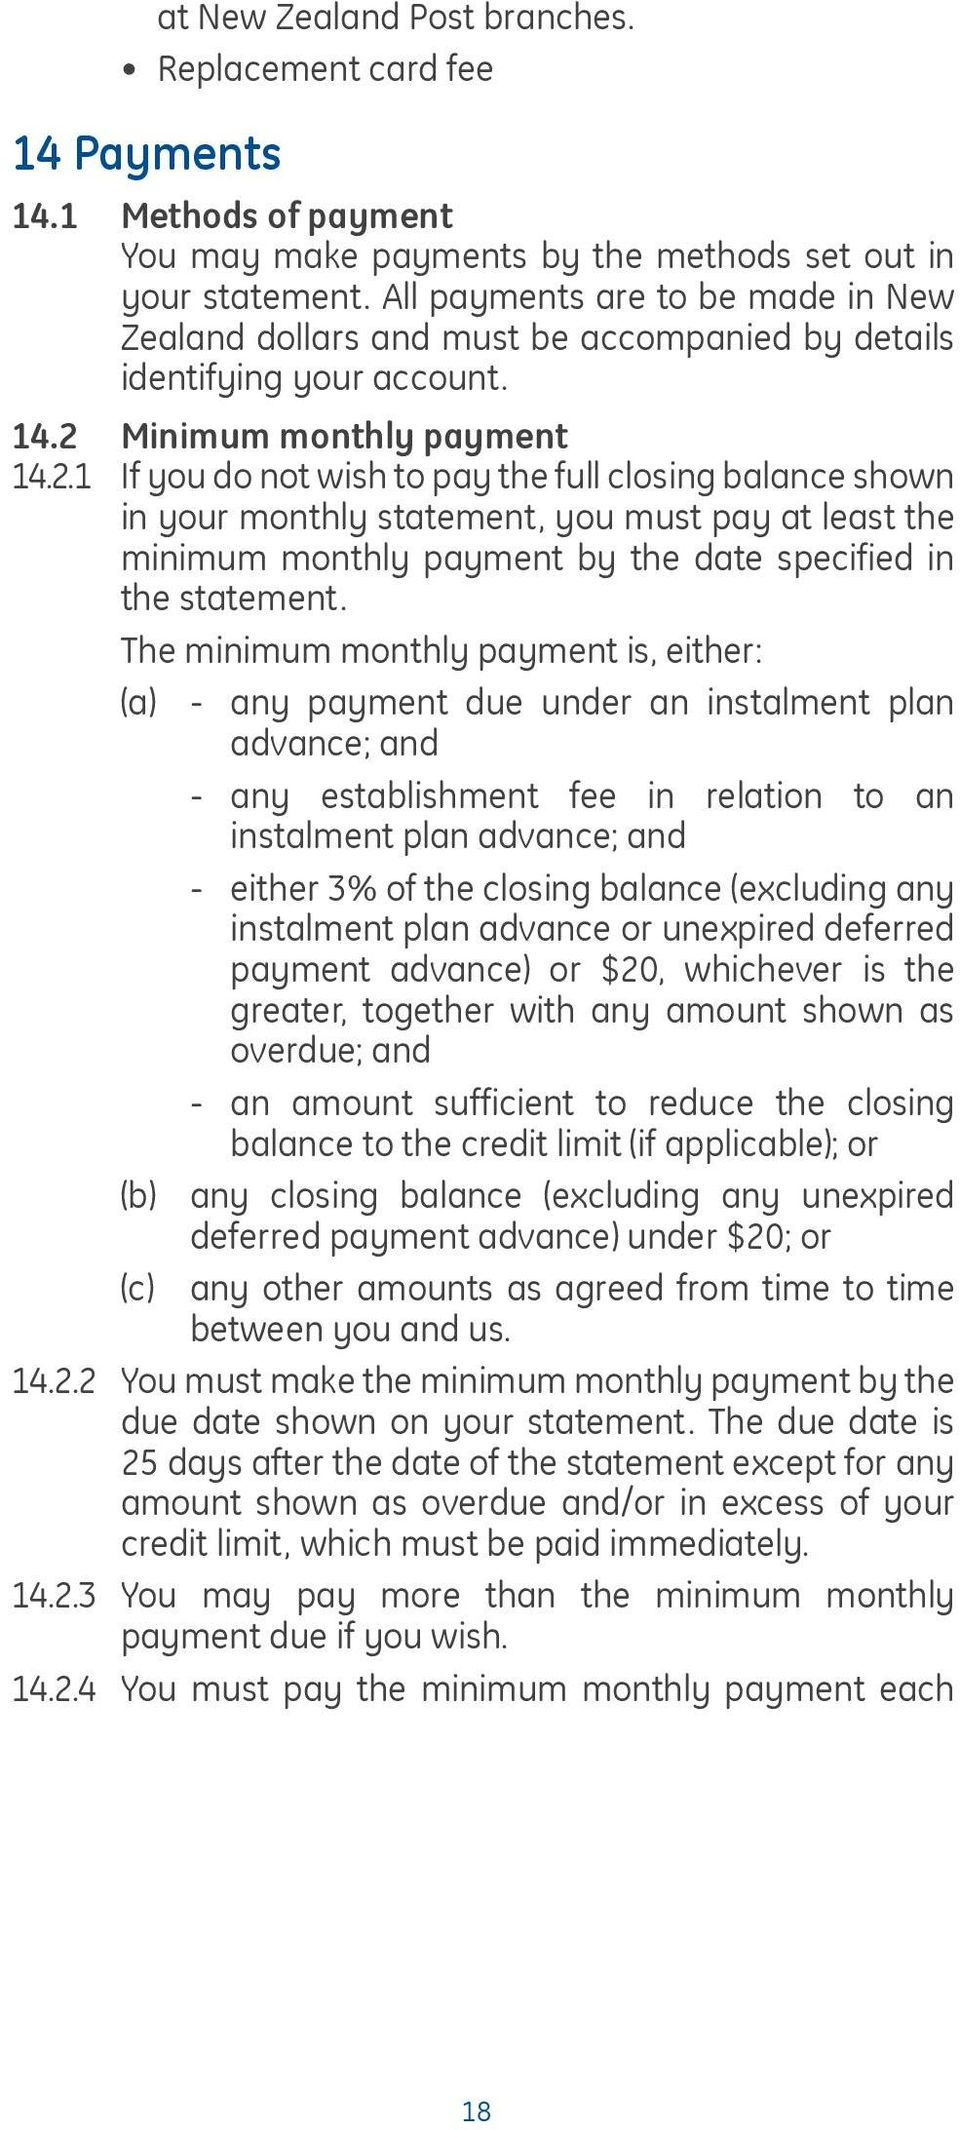 Minimum monthly payment 14.2.